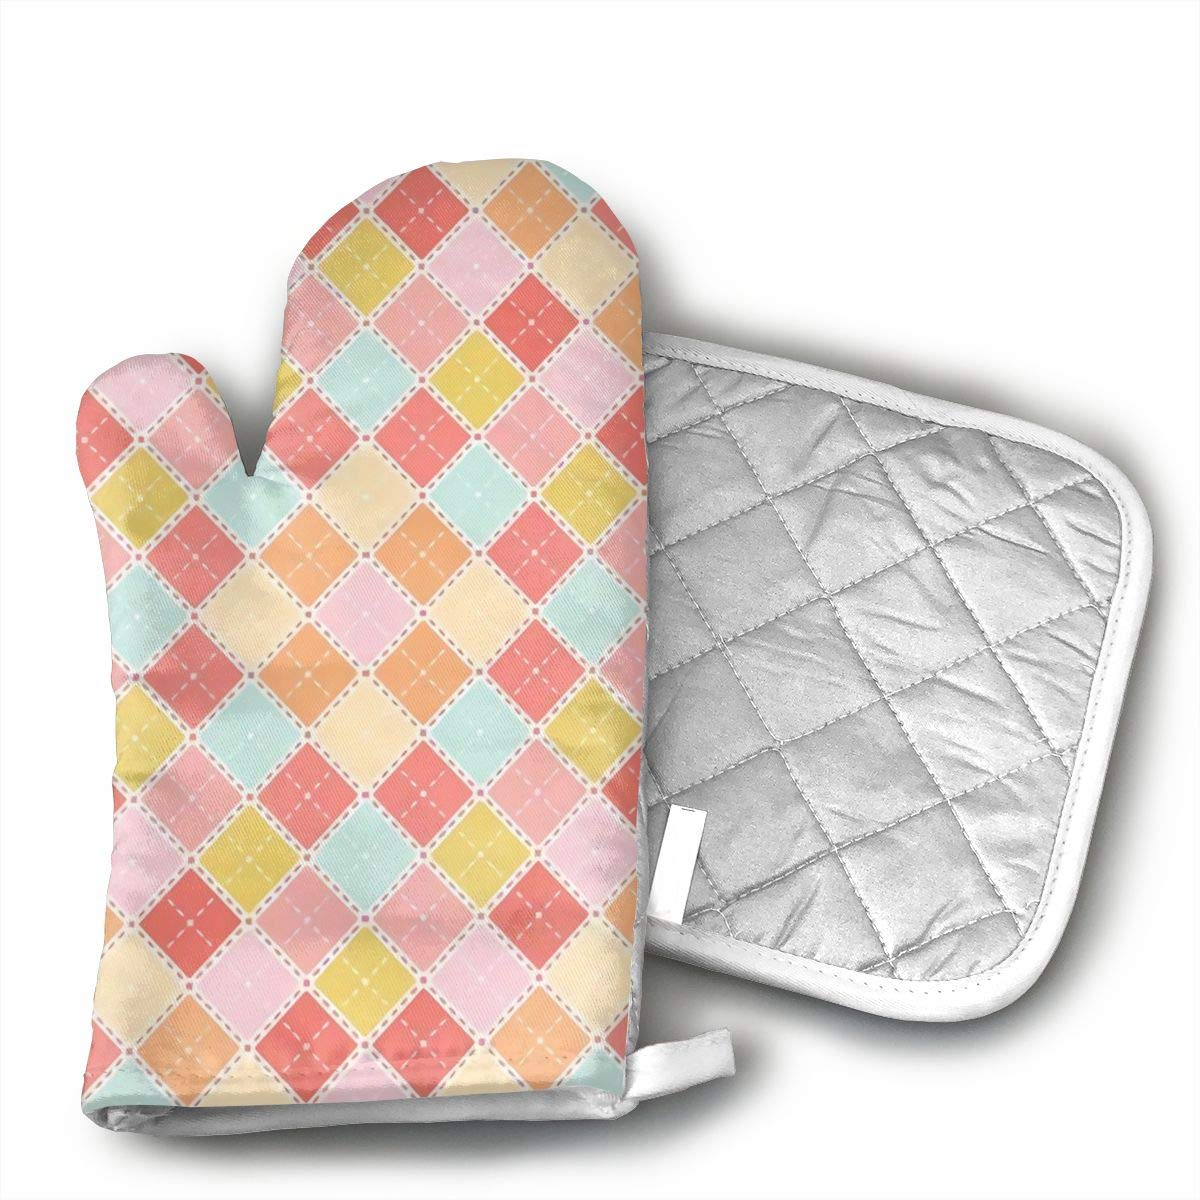 not Oven Mitts and Potholders Coral Plaid Non-Slip Grip Heat Resistant Oven Gloves BBQ Cooking Baking Grilling